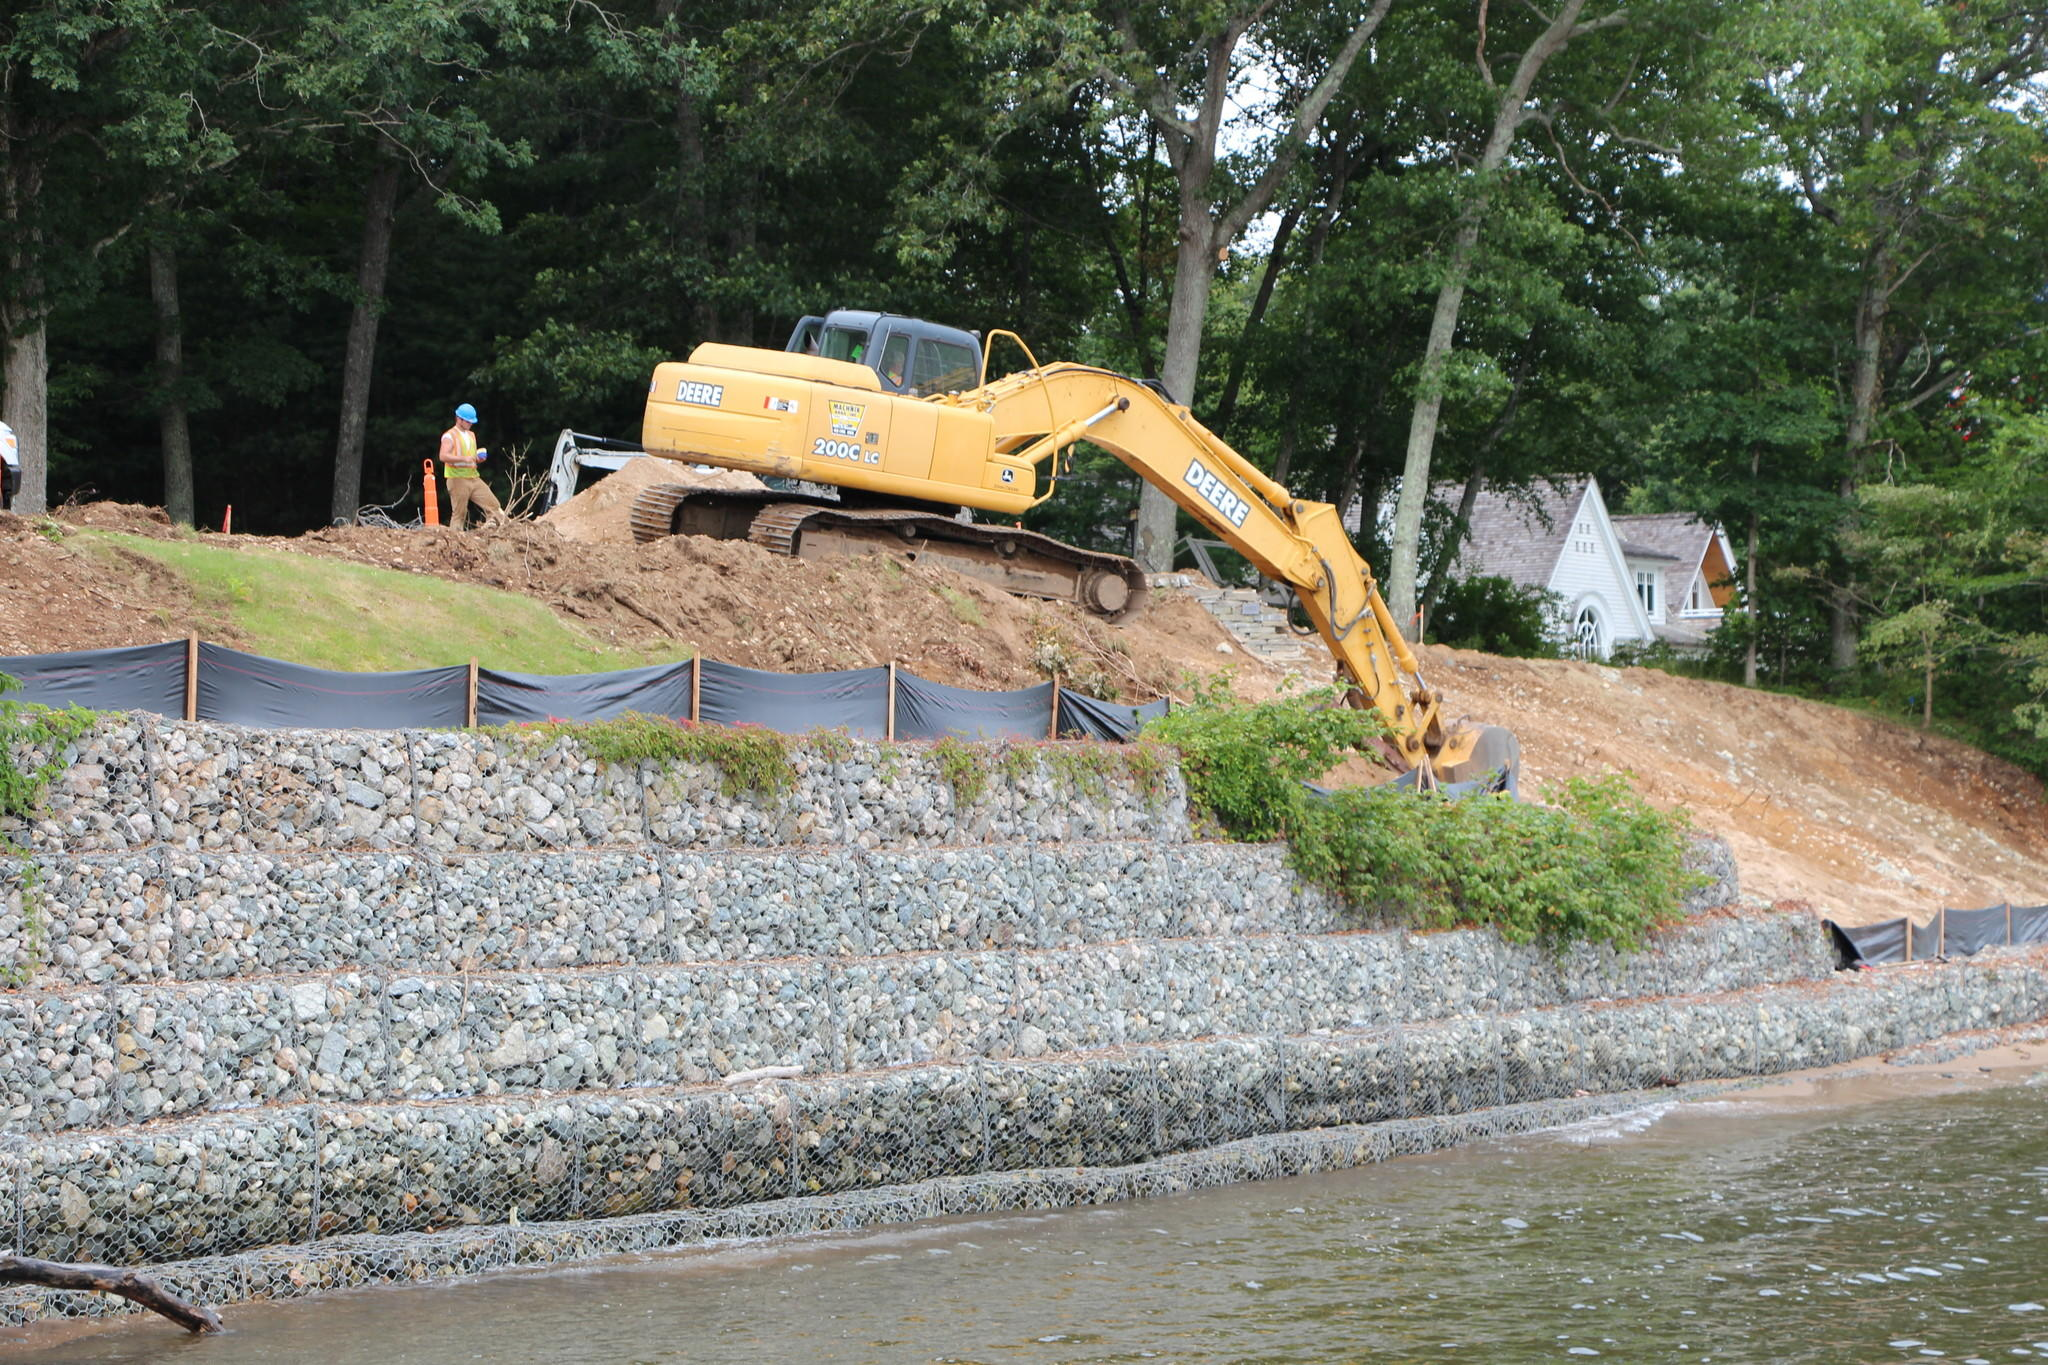 A decade ago, David and Betsy Sams built this retaining wall to protect their home, and their neighbor's home, from erosion they feared was threatening their home on the Connecticut River. But it is above the high tide line, it violates state and local regulations, and it now has to be torn down. It cost about $150,000 to build, it will cost about $300,000 to tear down, and the family also spent hundreds of thousands in court.